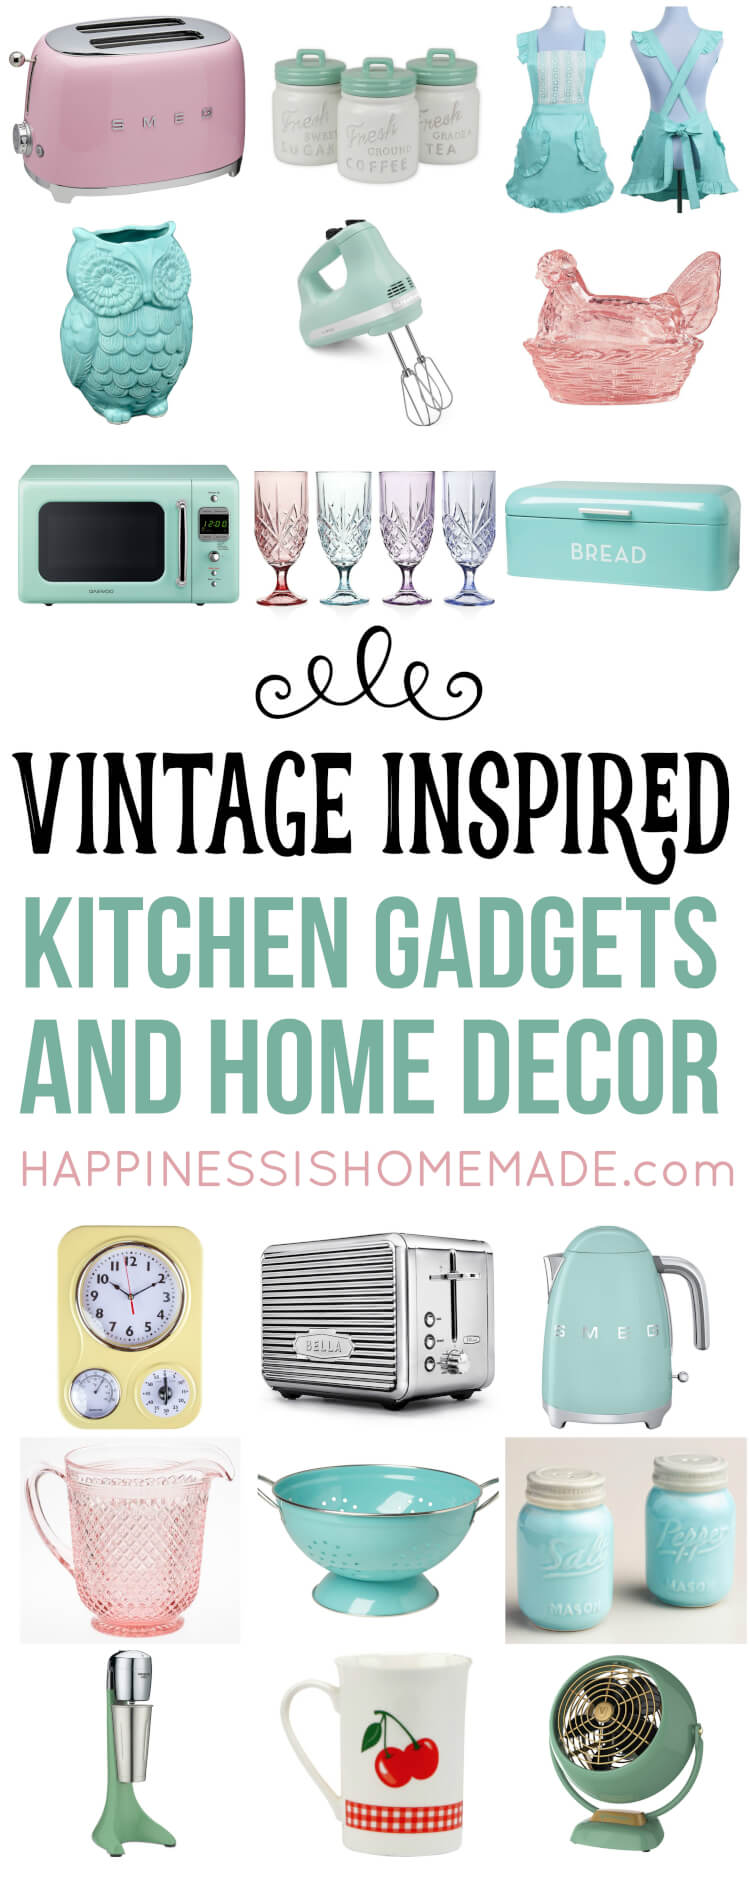 Vintage Inspired Kitchen Decor  Gadgets  Happiness is